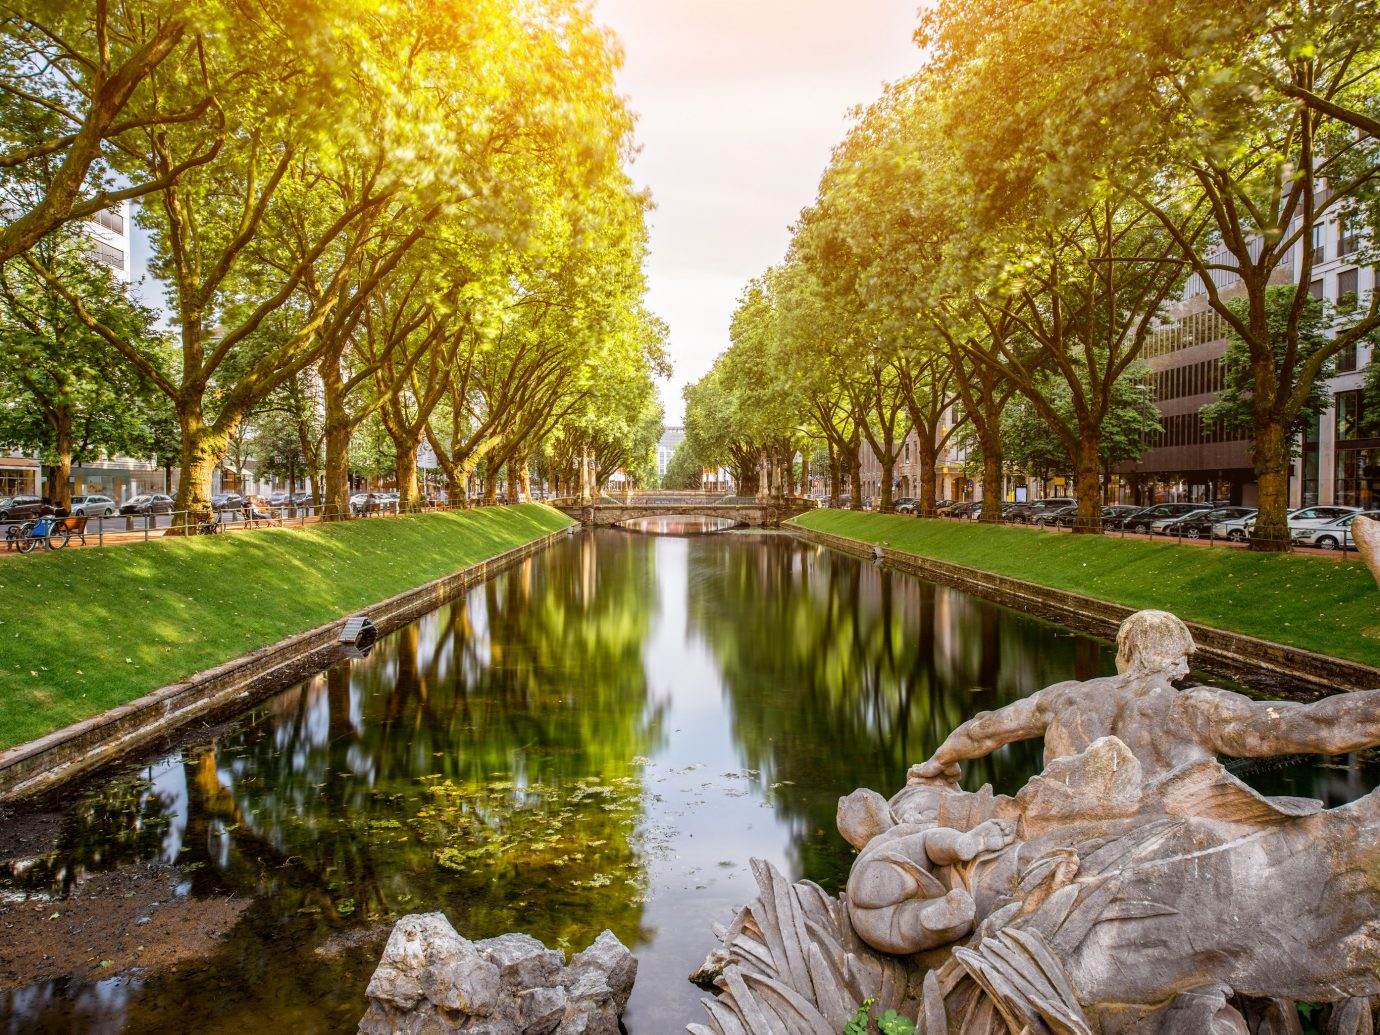 Berlin Germany Munich Trip Ideas water reflection waterway Nature tree leaf plant Canal bank sky watercourse autumn grass spring pond landscape reflecting pool recreation River water feature